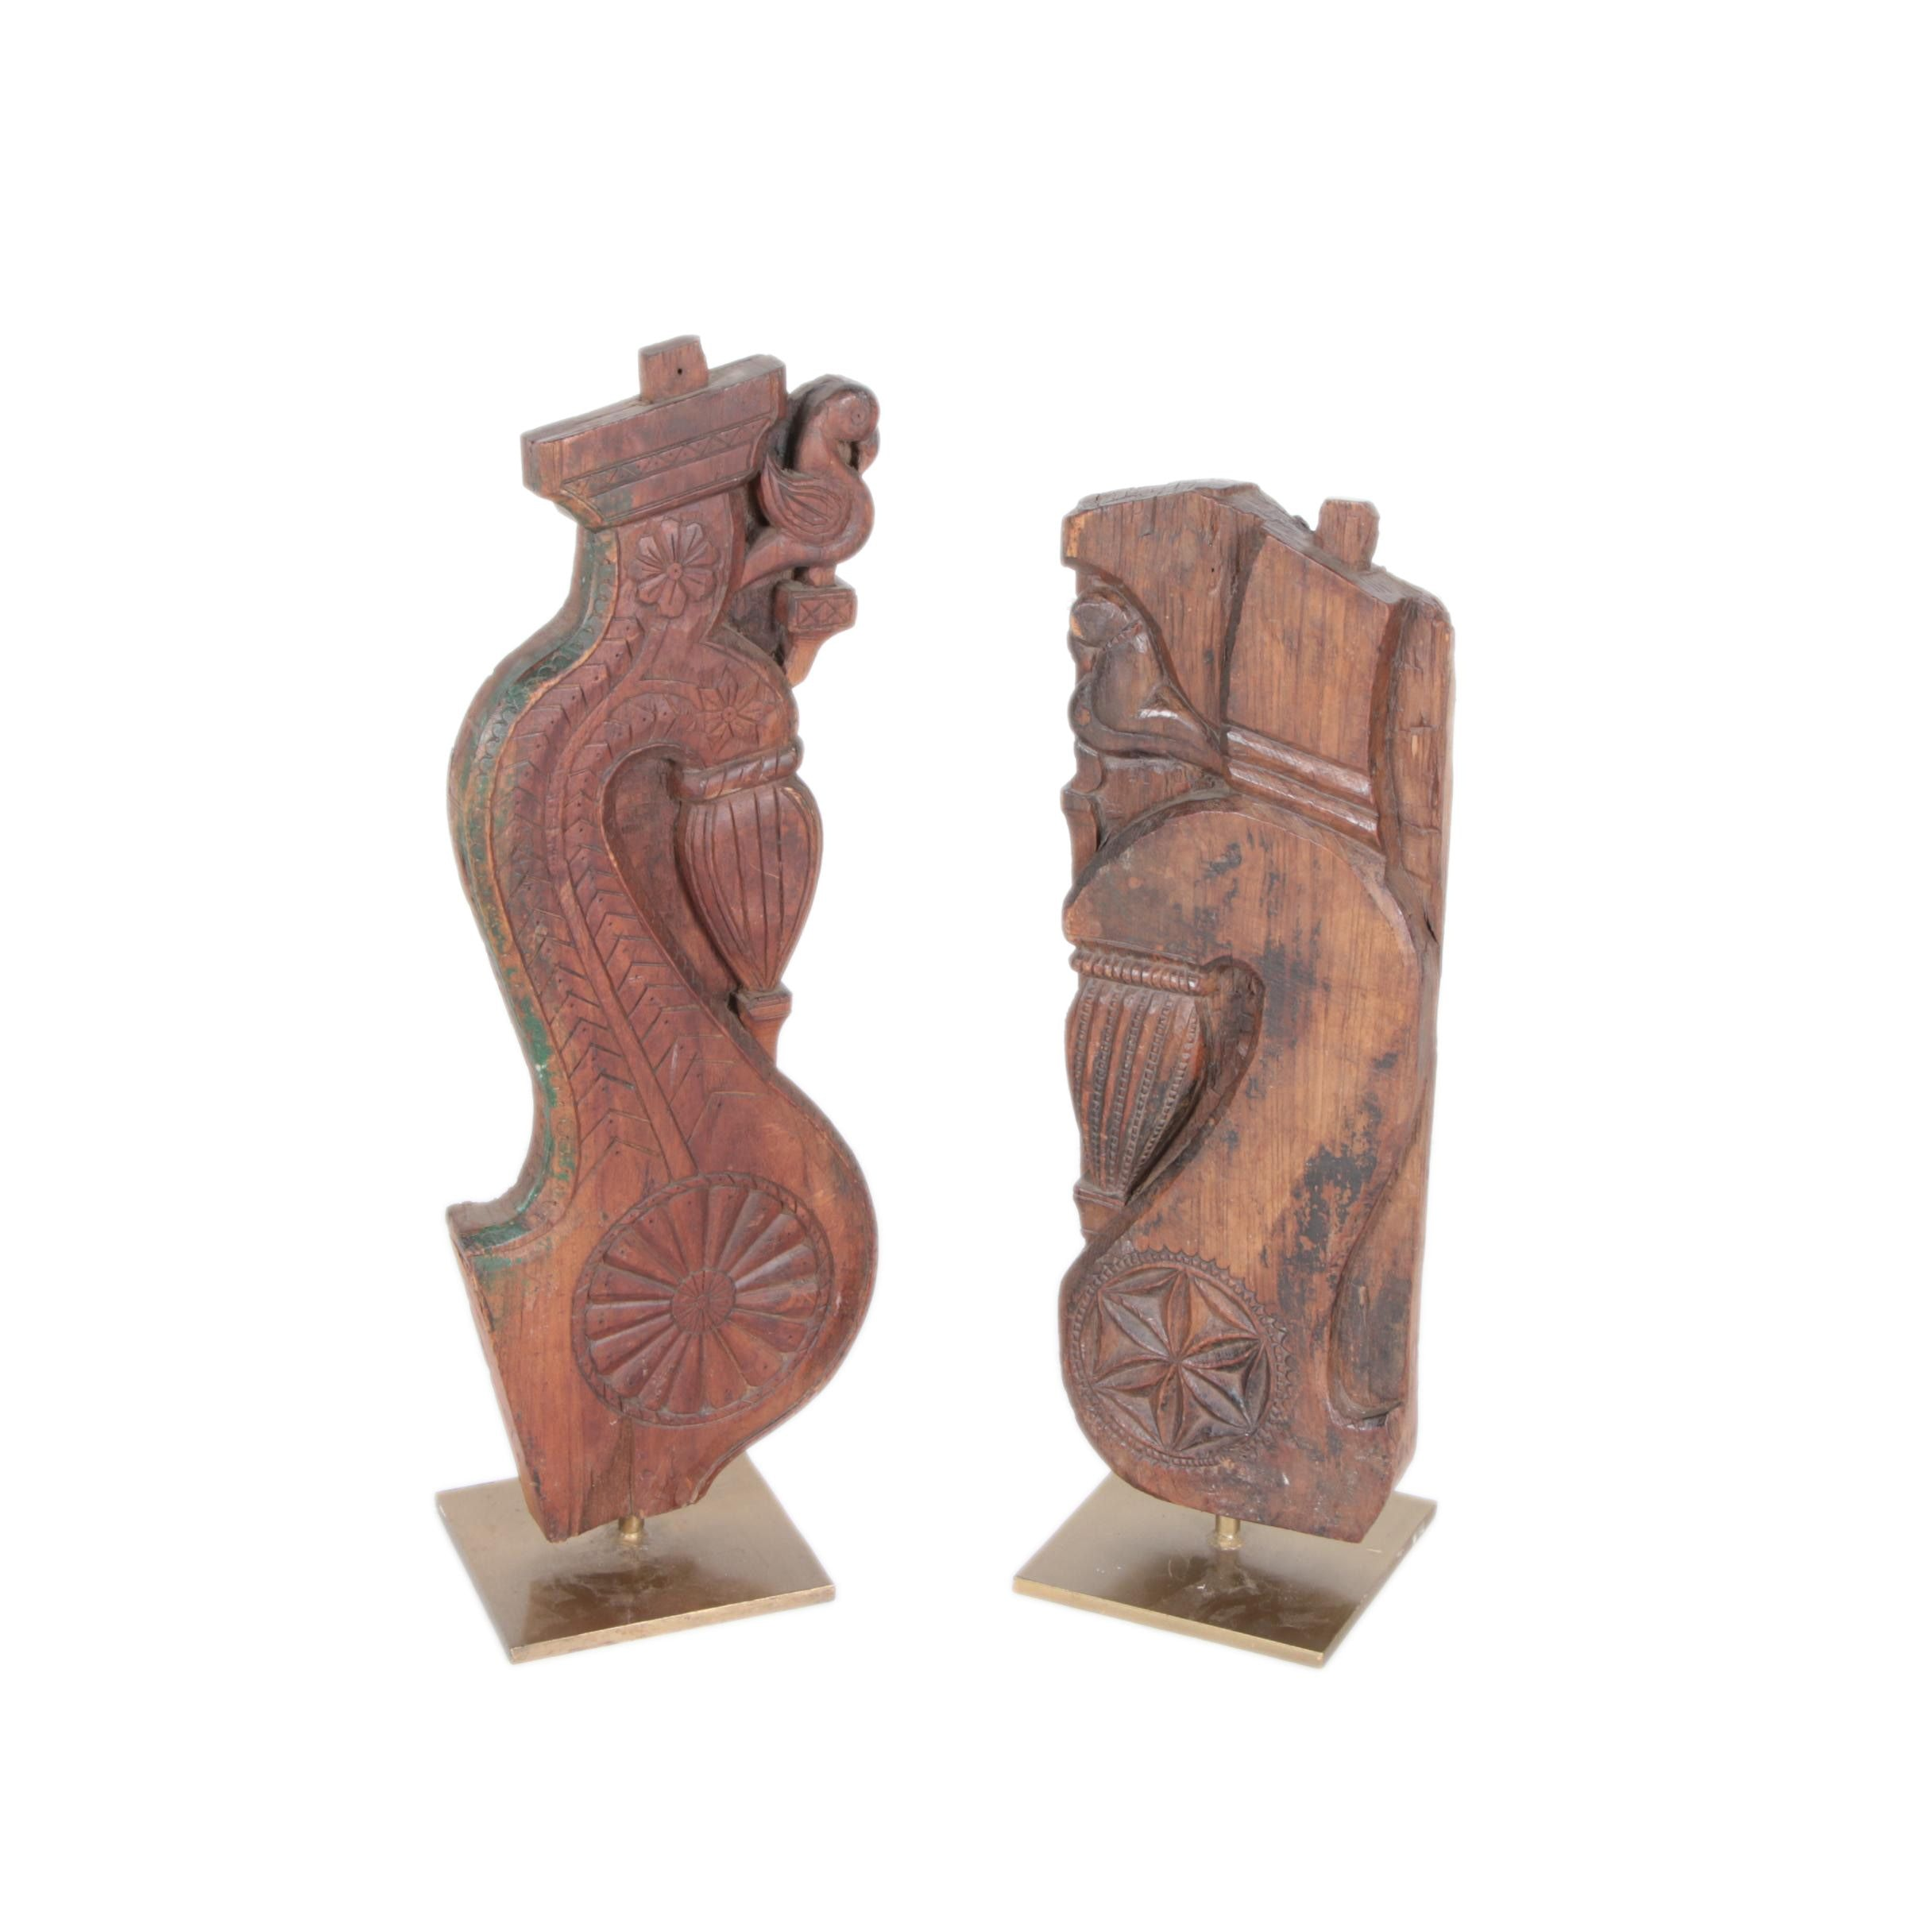 Carved Wooden Architectural Pieces